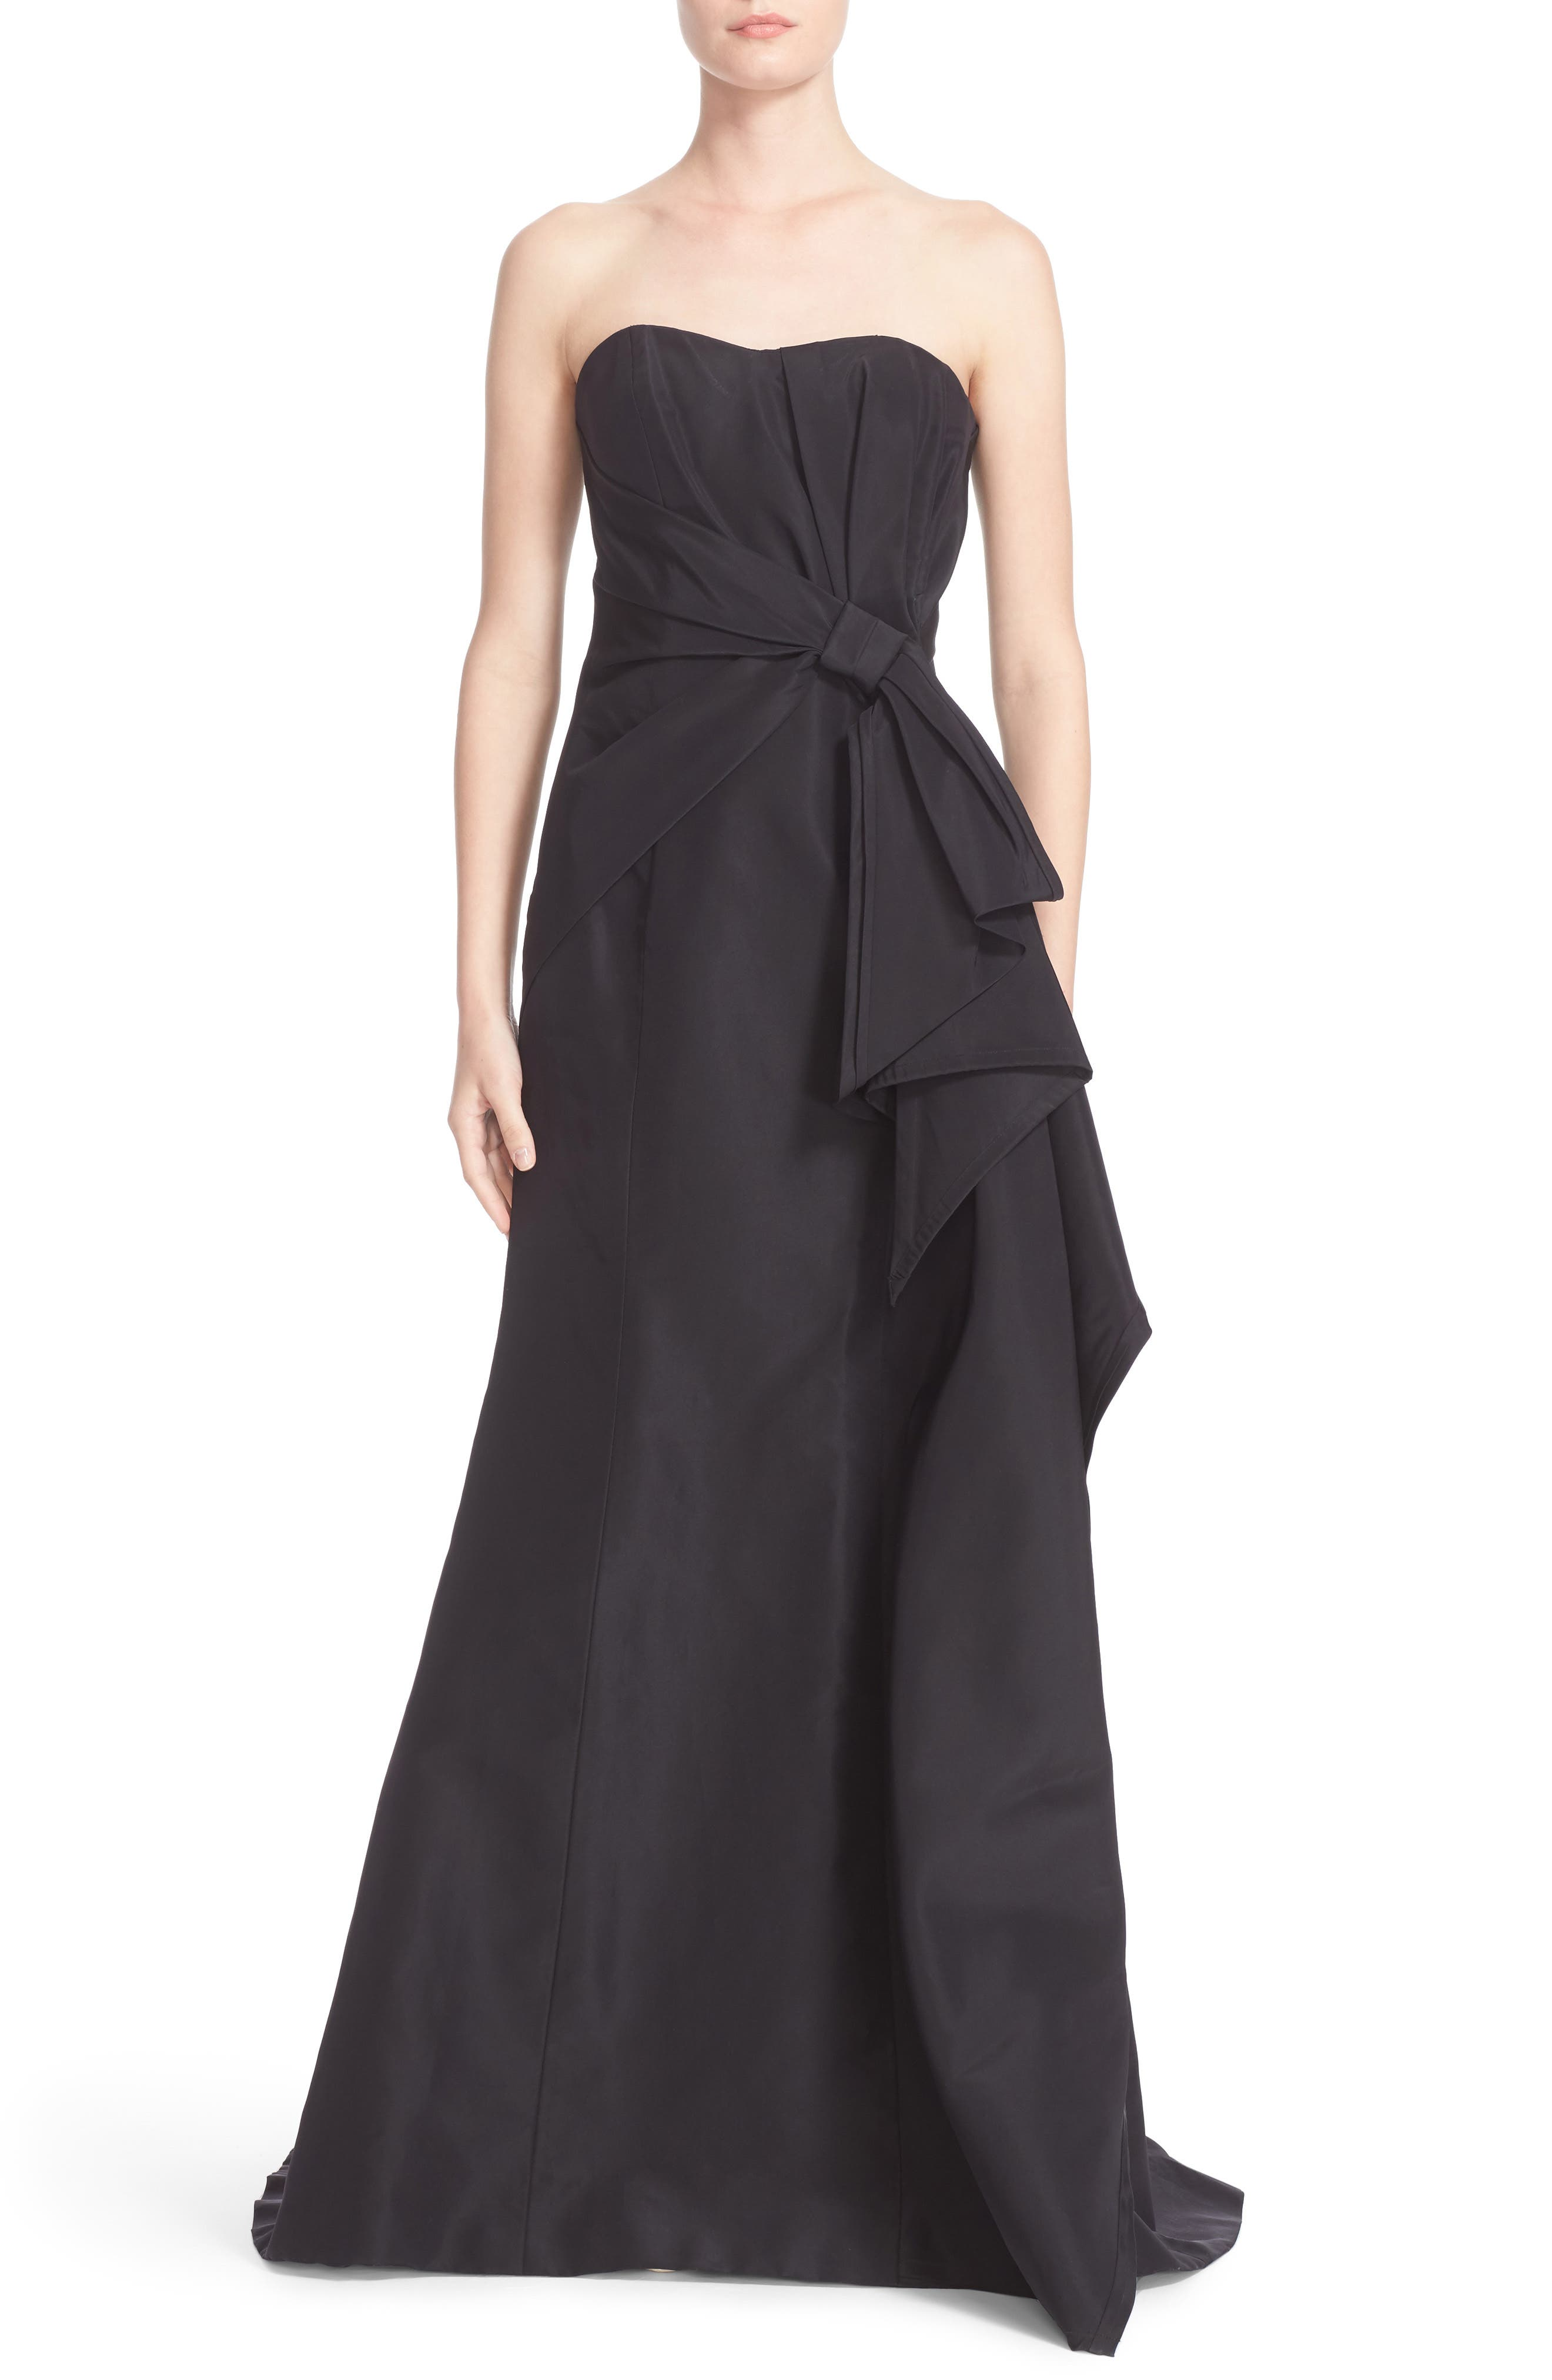 Carolina Herrera Bow Detail Strapless Silk Faille Gown (Nordstrom Exclusive)